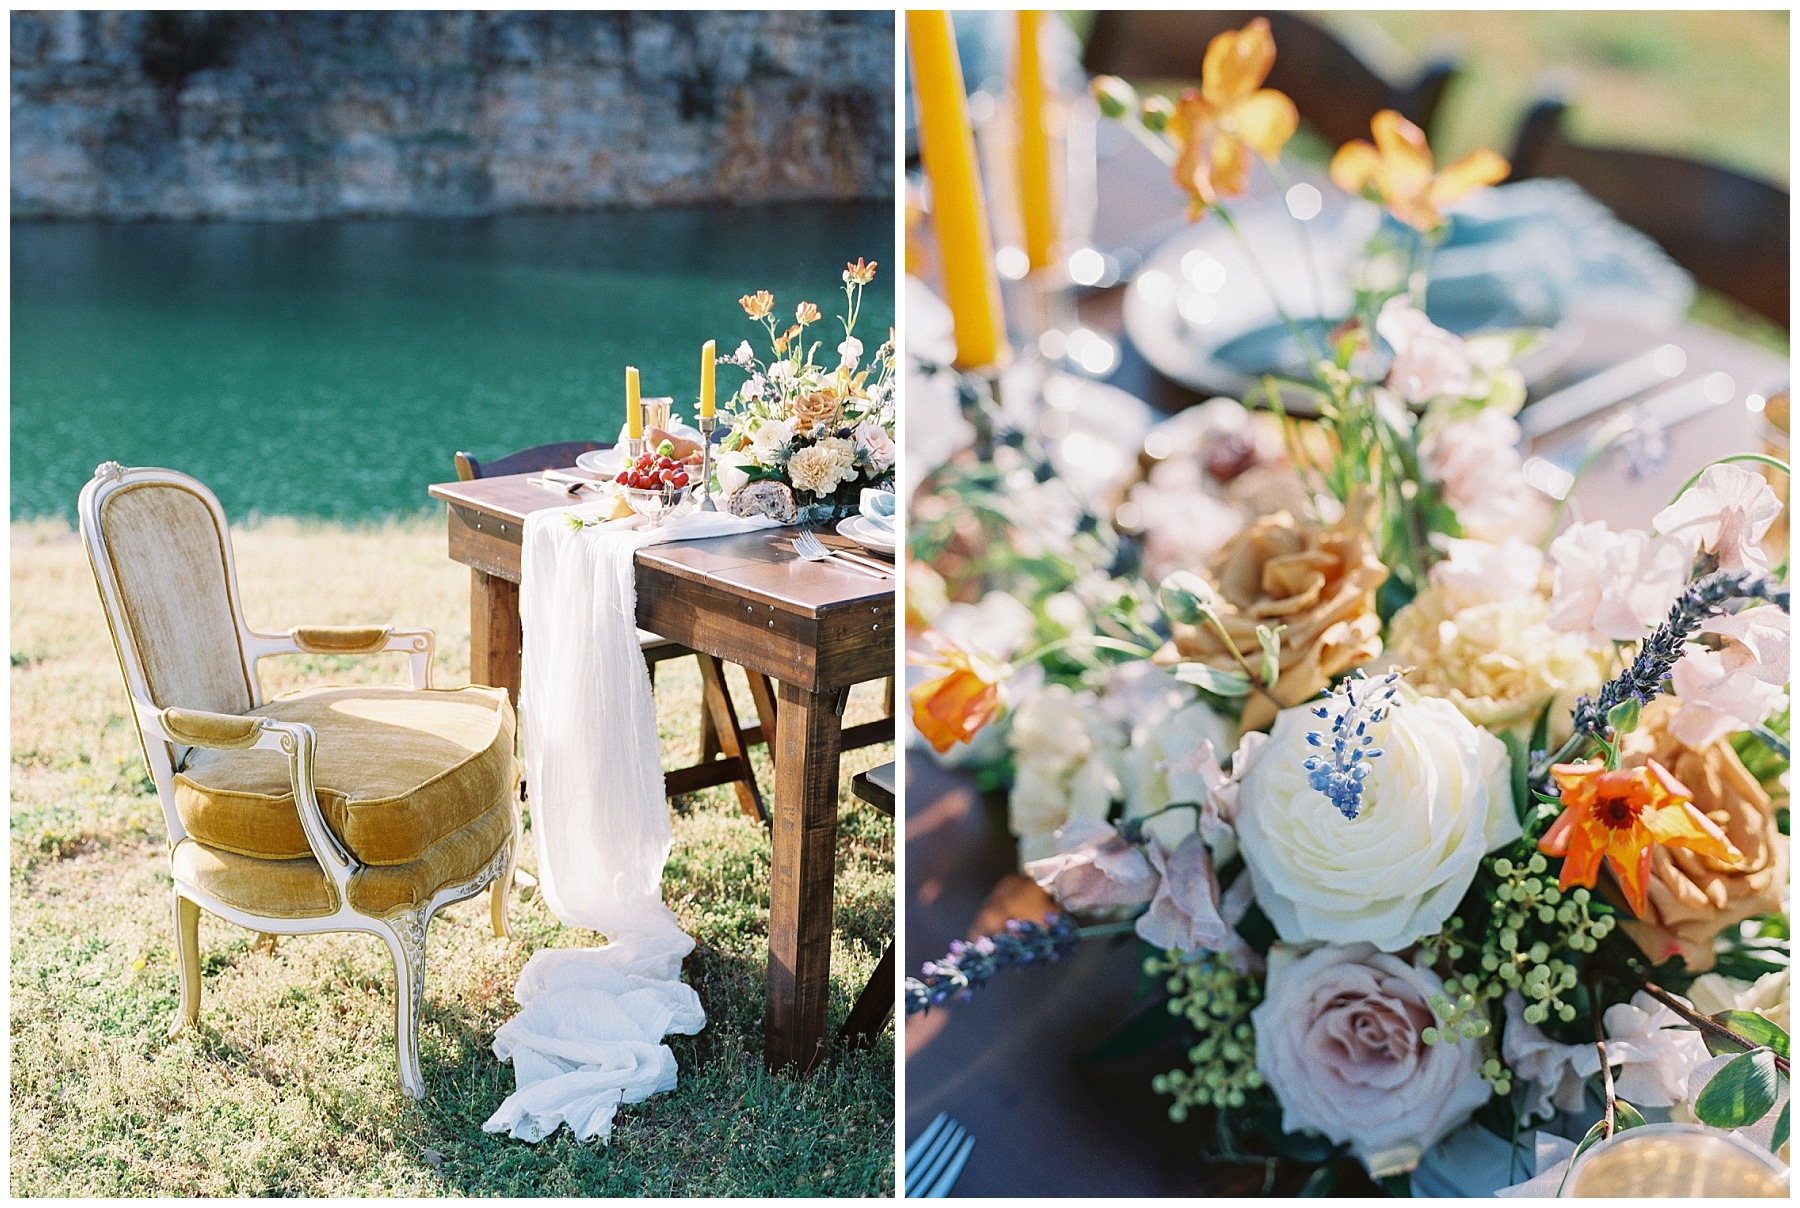 Intimate Spanish and French Inspired Destination Wedding with Lakeside Dinner Party at Dusk at Wildcliff by Kelsi Kliethermes Photography Best Missouri and Maui Wedding Photographer_0045.jpg